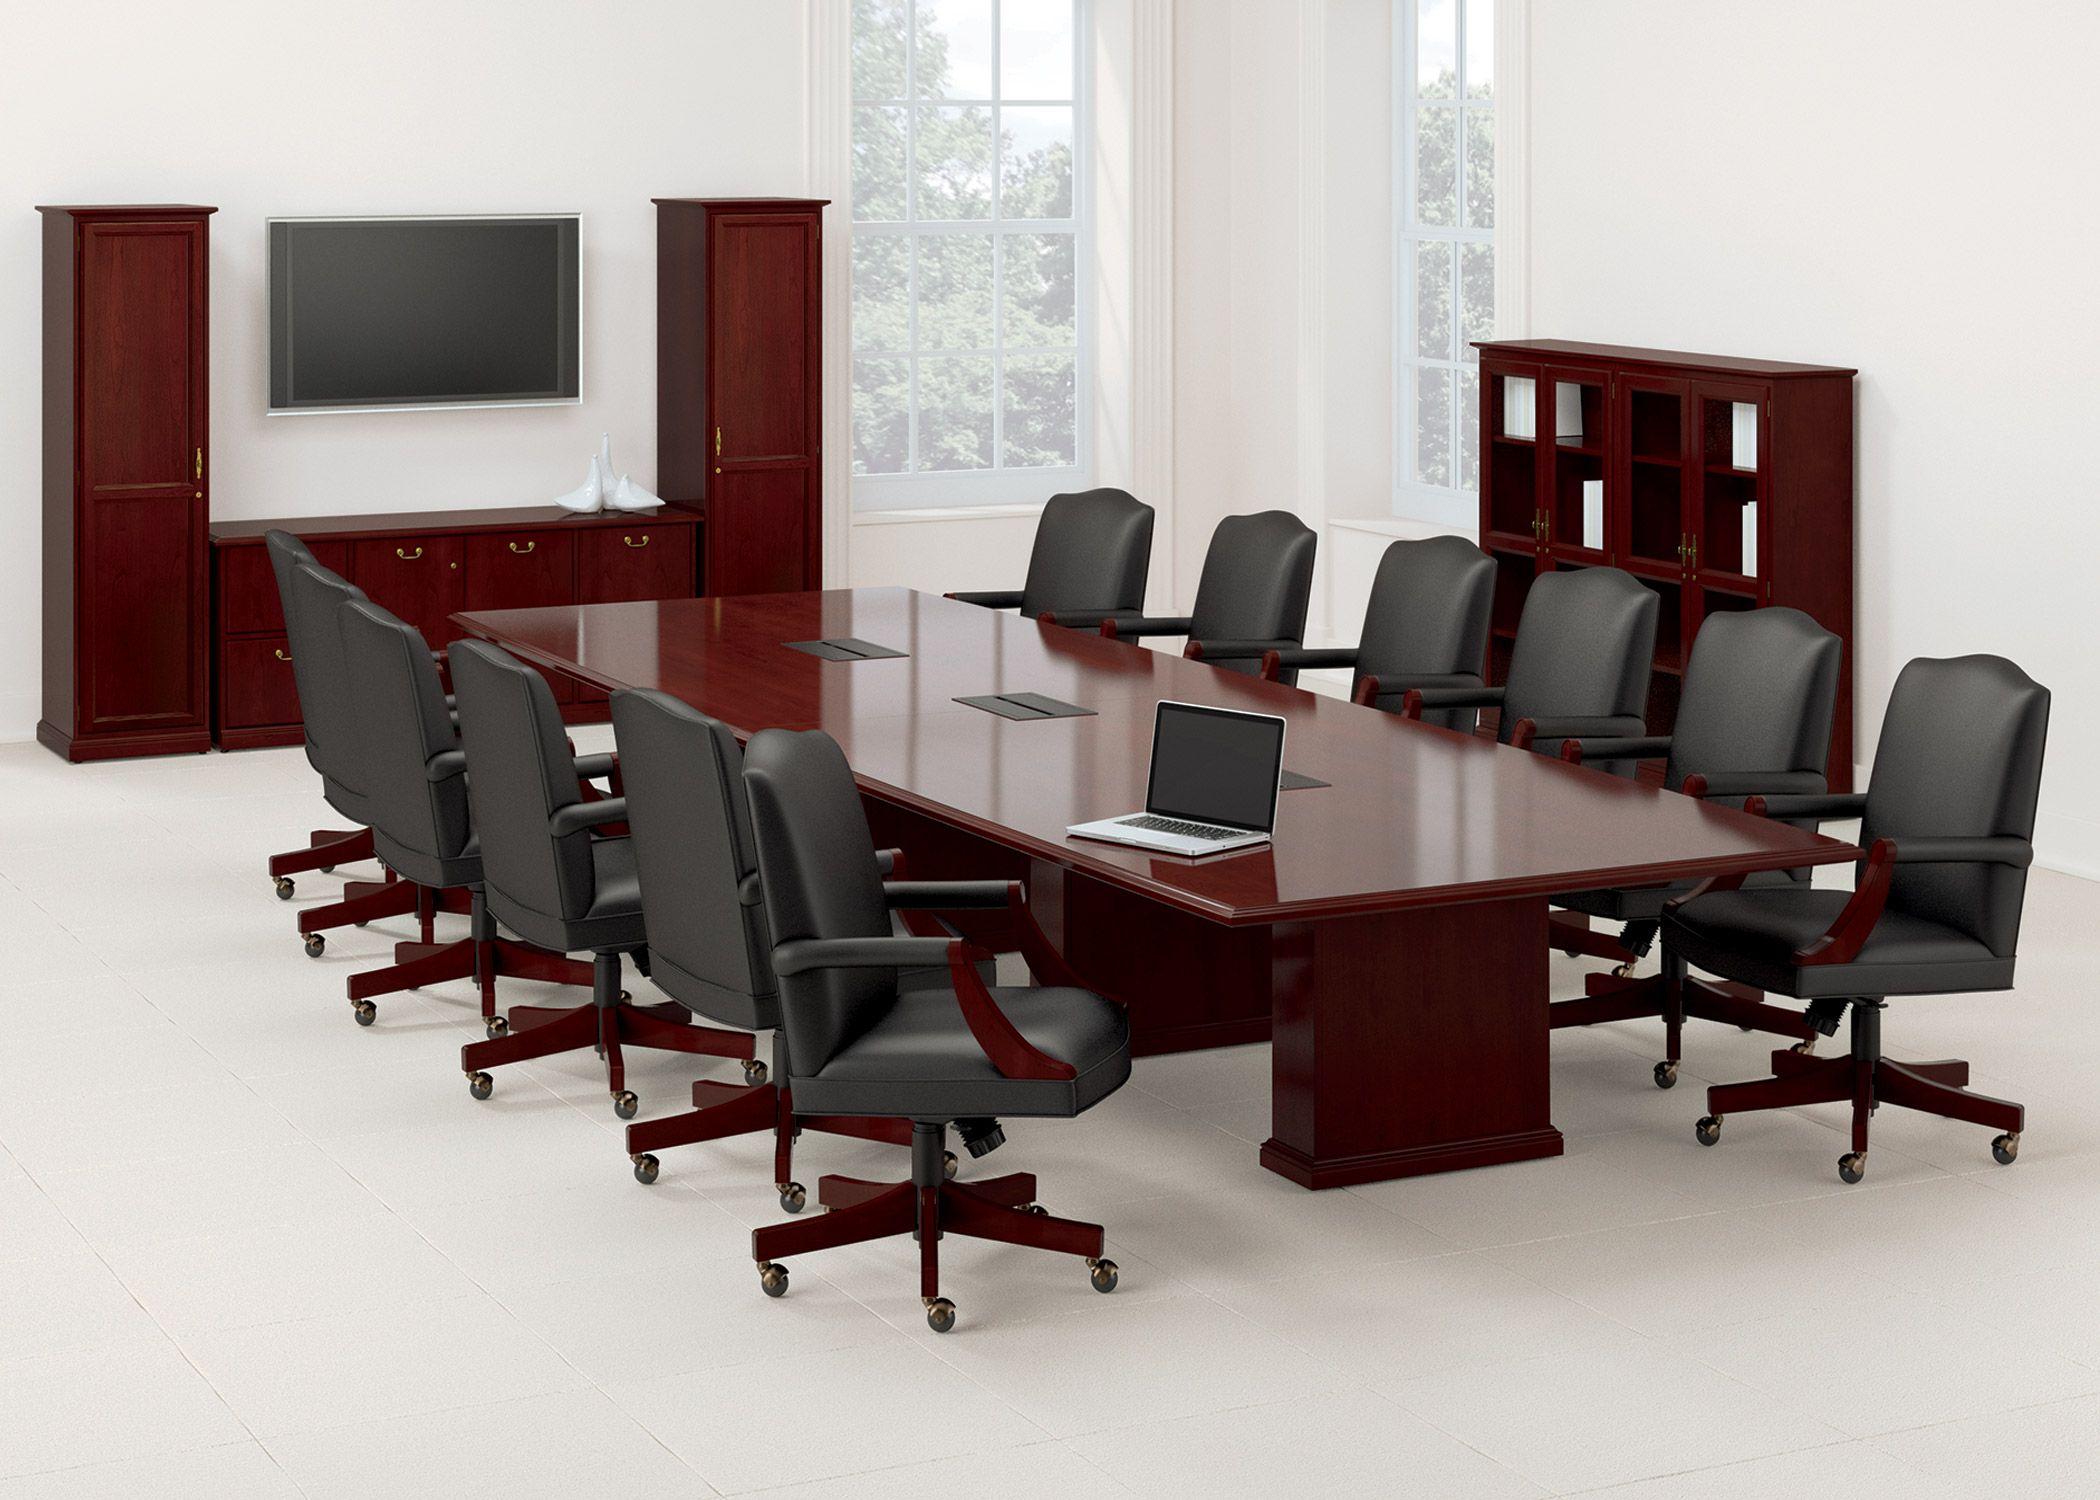 Products National Office Furniture Barrington Table Office Table And Chairs Furniture Conference Room Tables